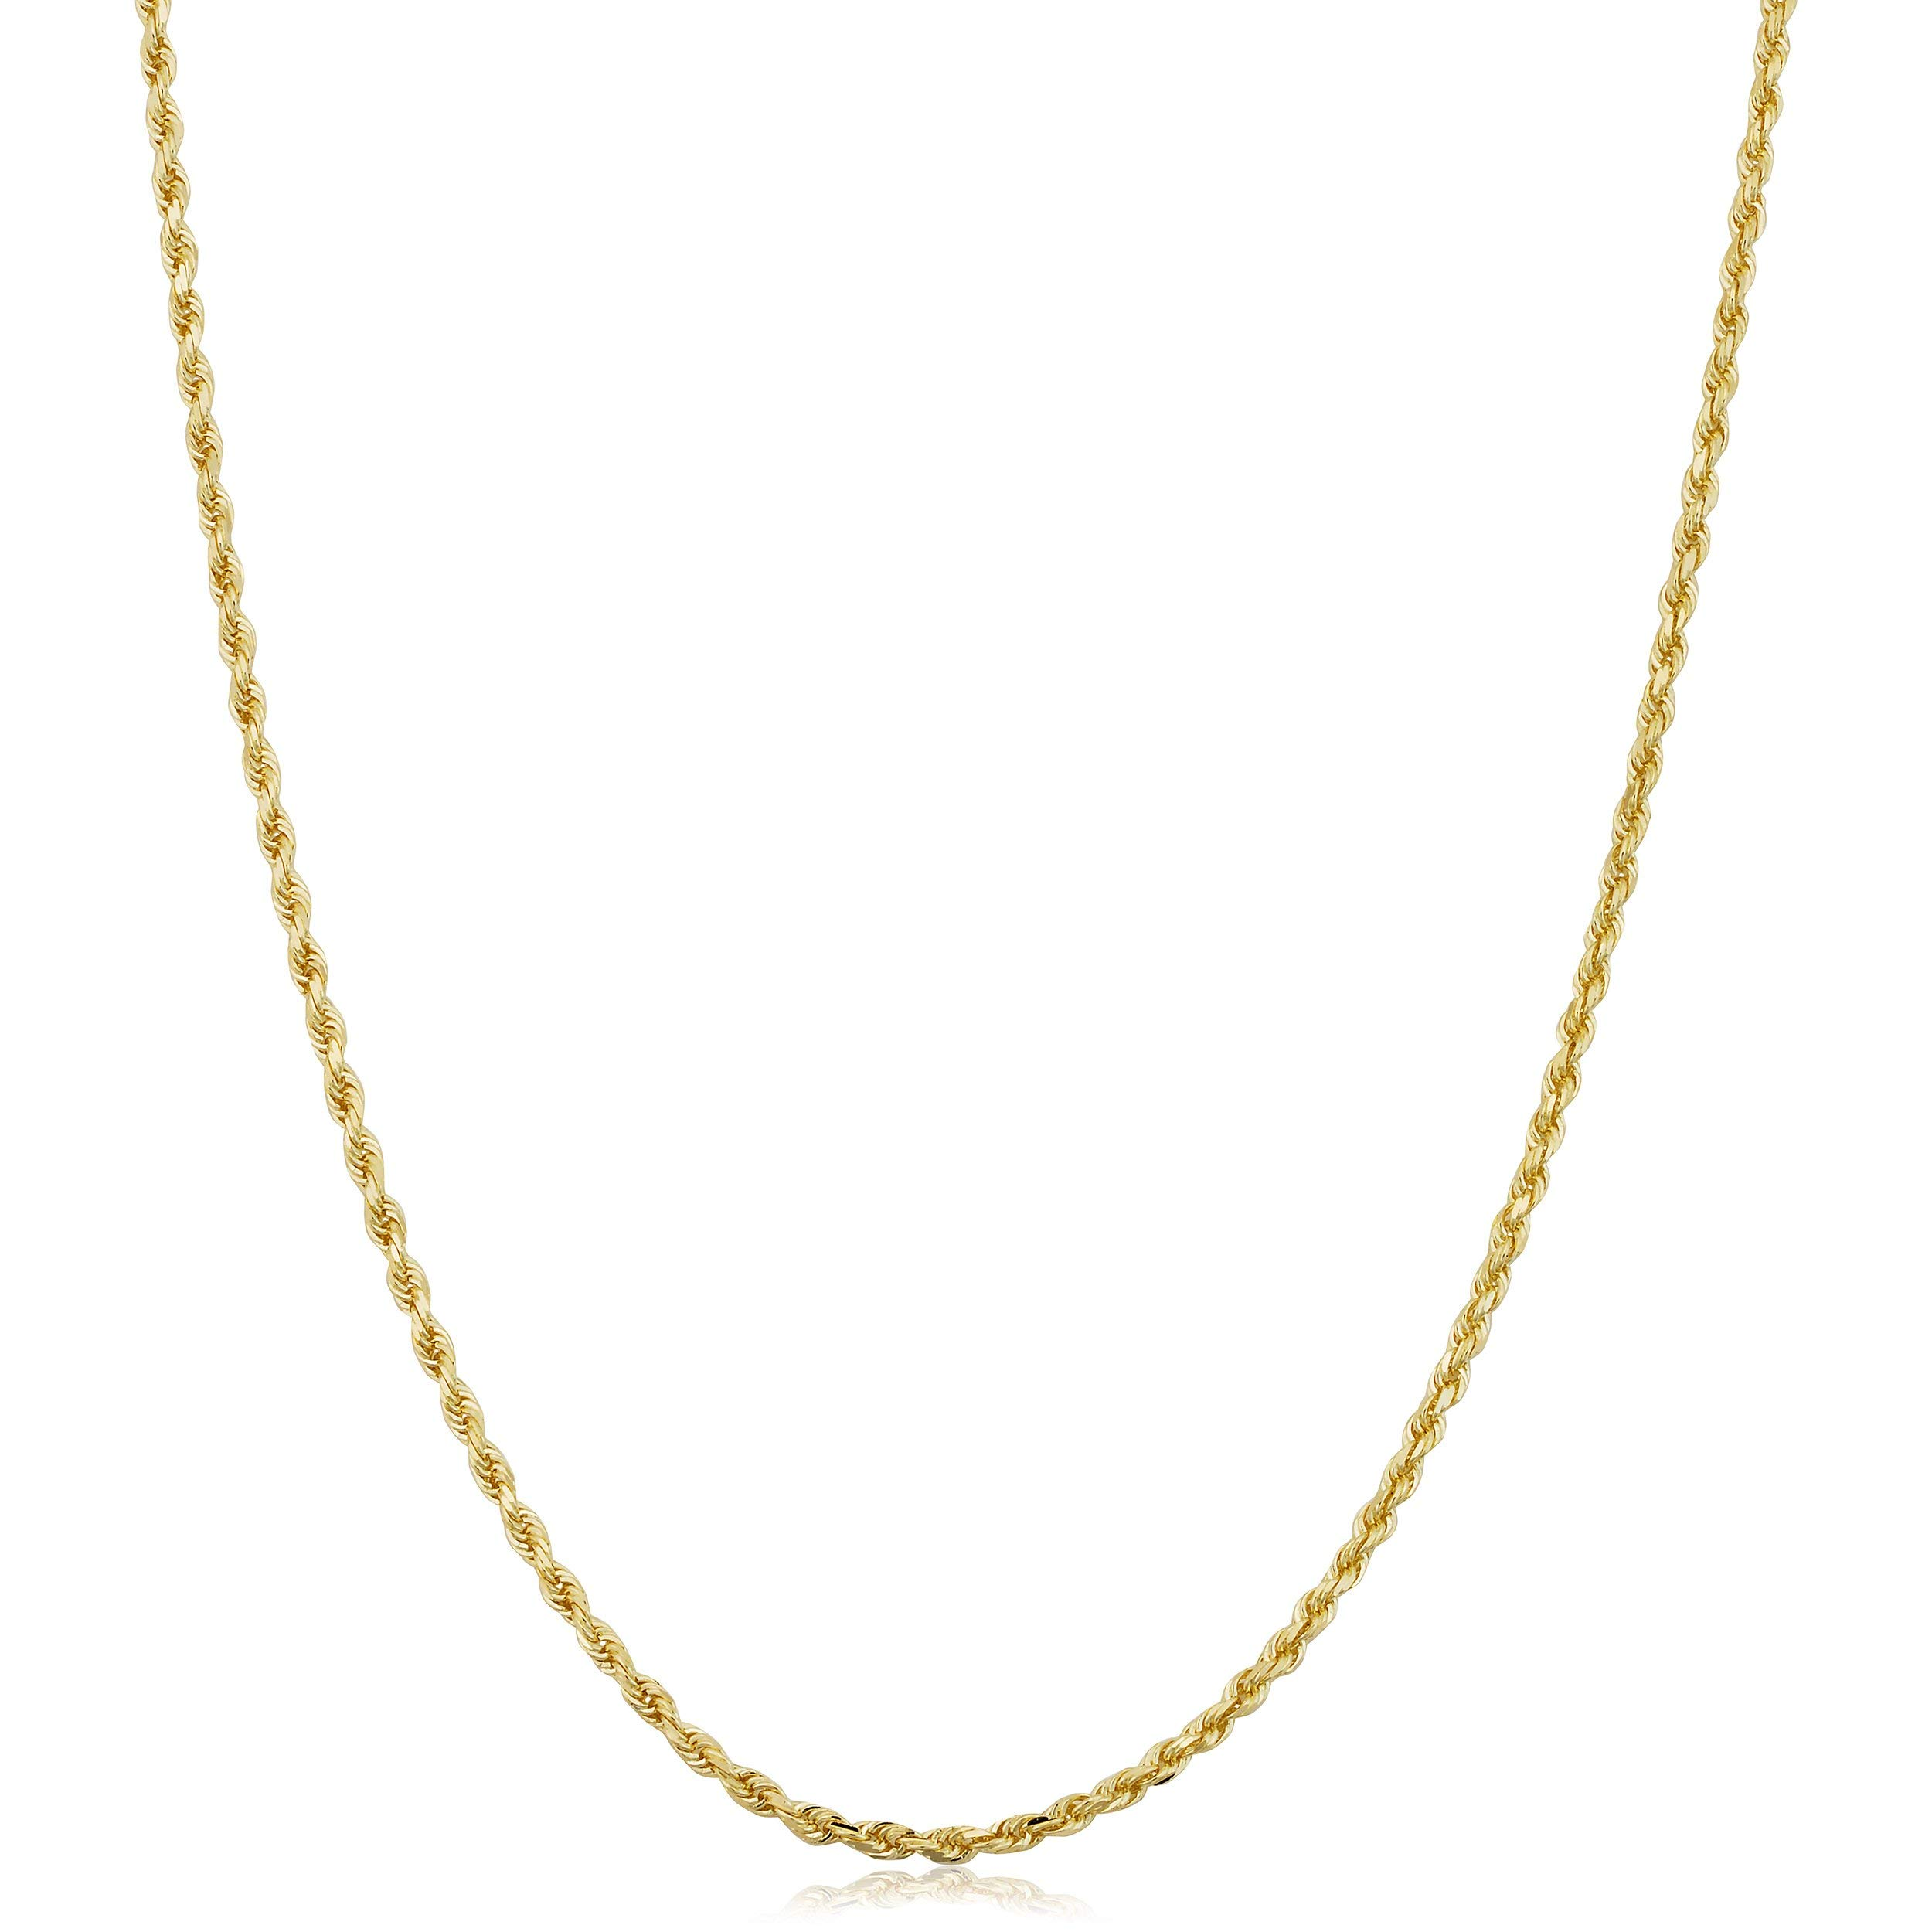 Becca Code 14k Yellow Gold 1.5MM Hollow Rope Chain Necklace 22''